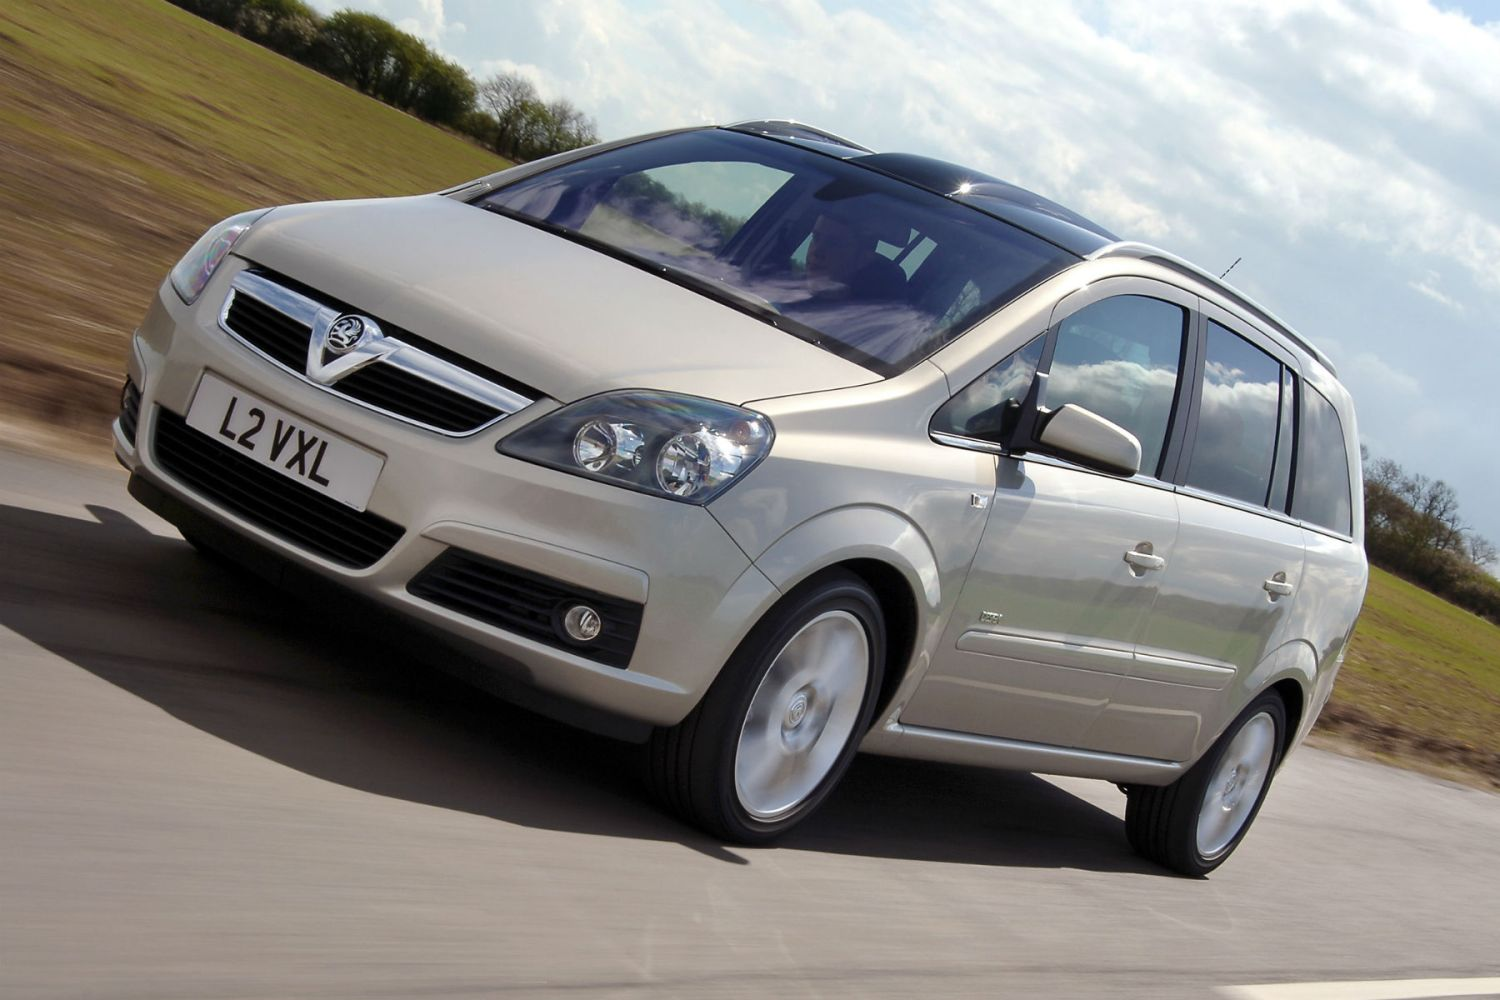 Vauxhall issues SECOND recall over Zafira fire risk